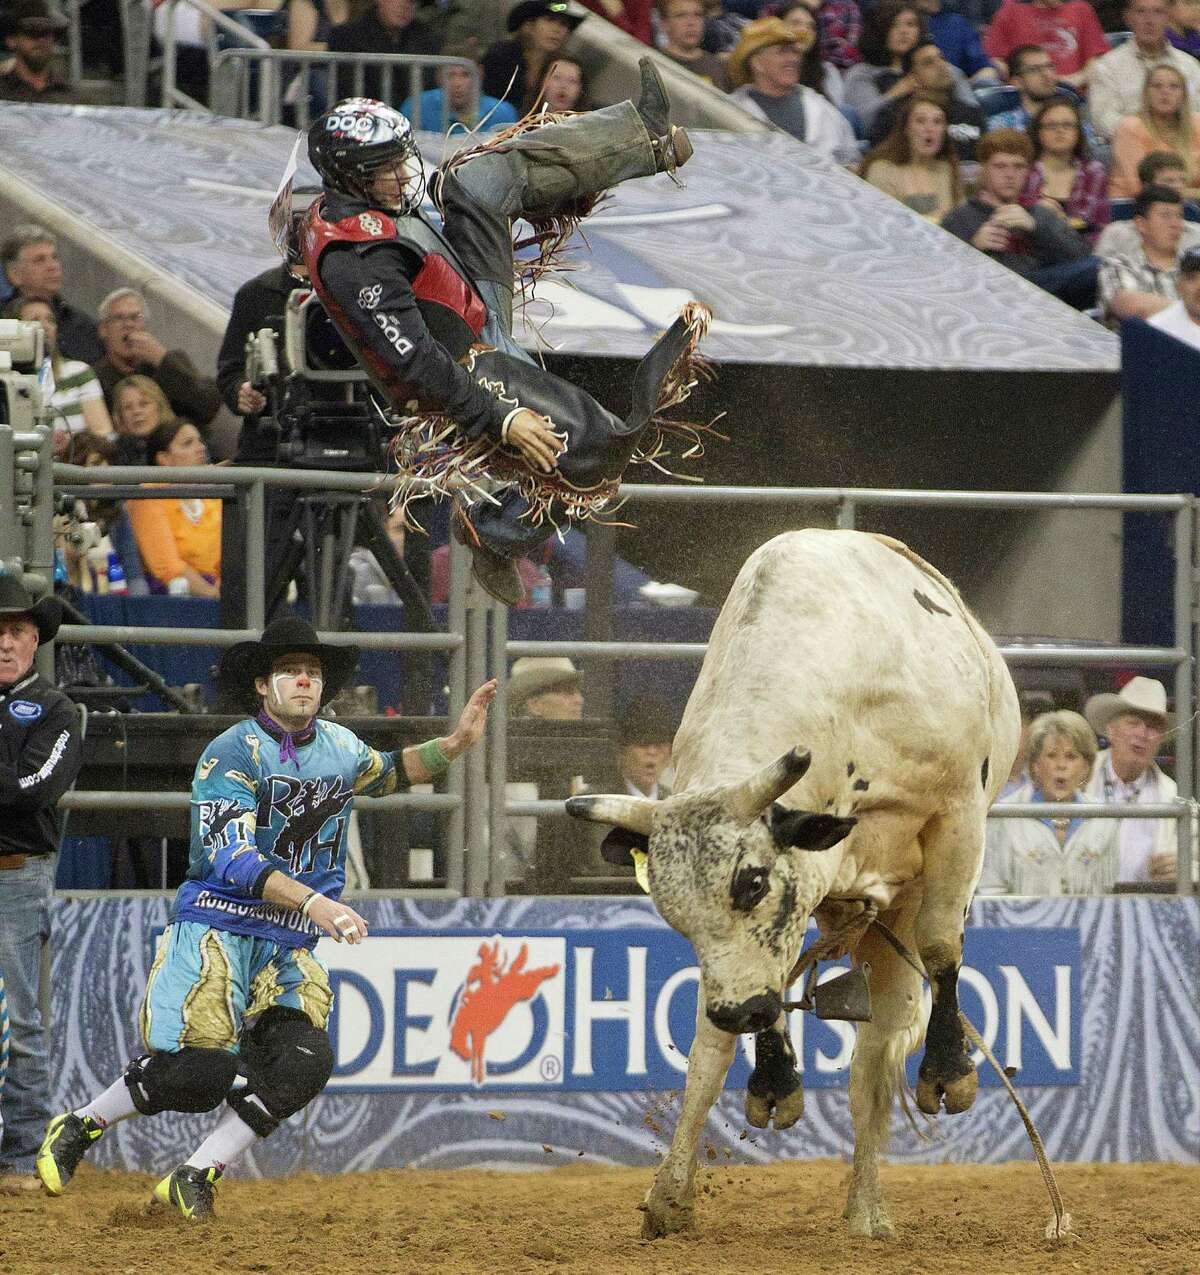 See our picks for who we'd like to see the 2015 Houston Livestock Show and Rodeo